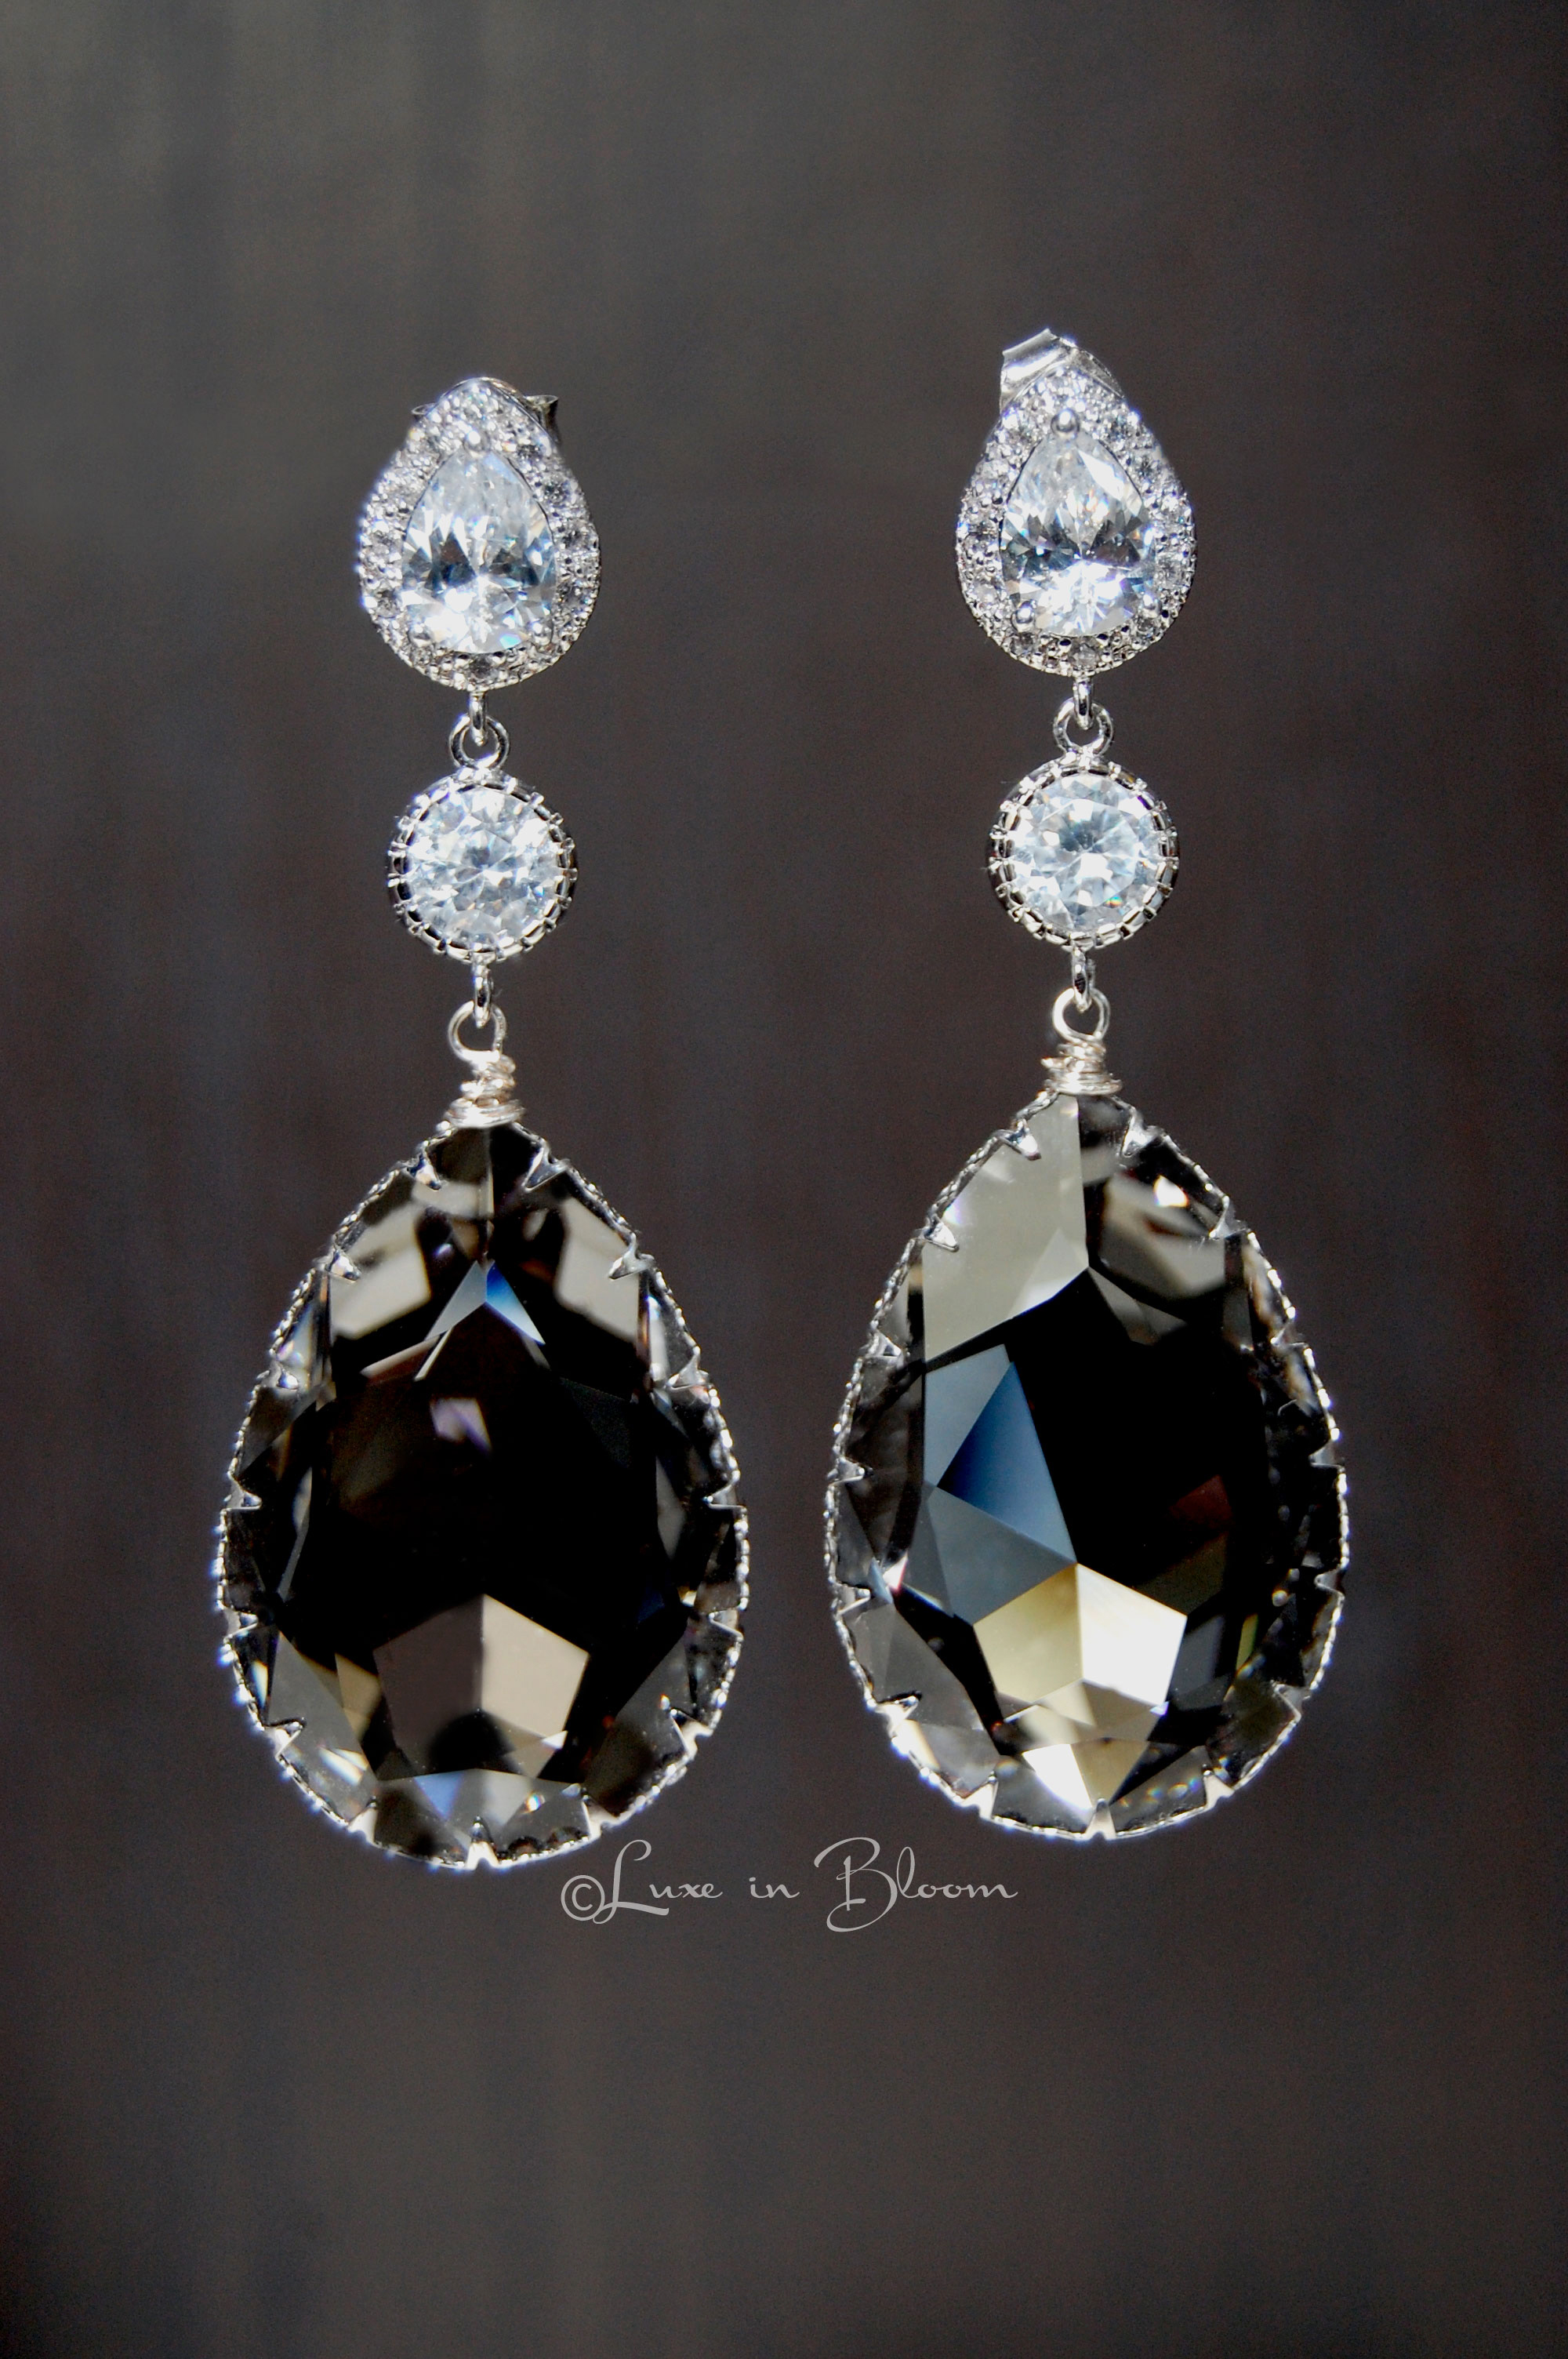 e2648eb37e1c03 Wedding Earrings In Black Diamond Swarovski Crystal - Style   E153 ...